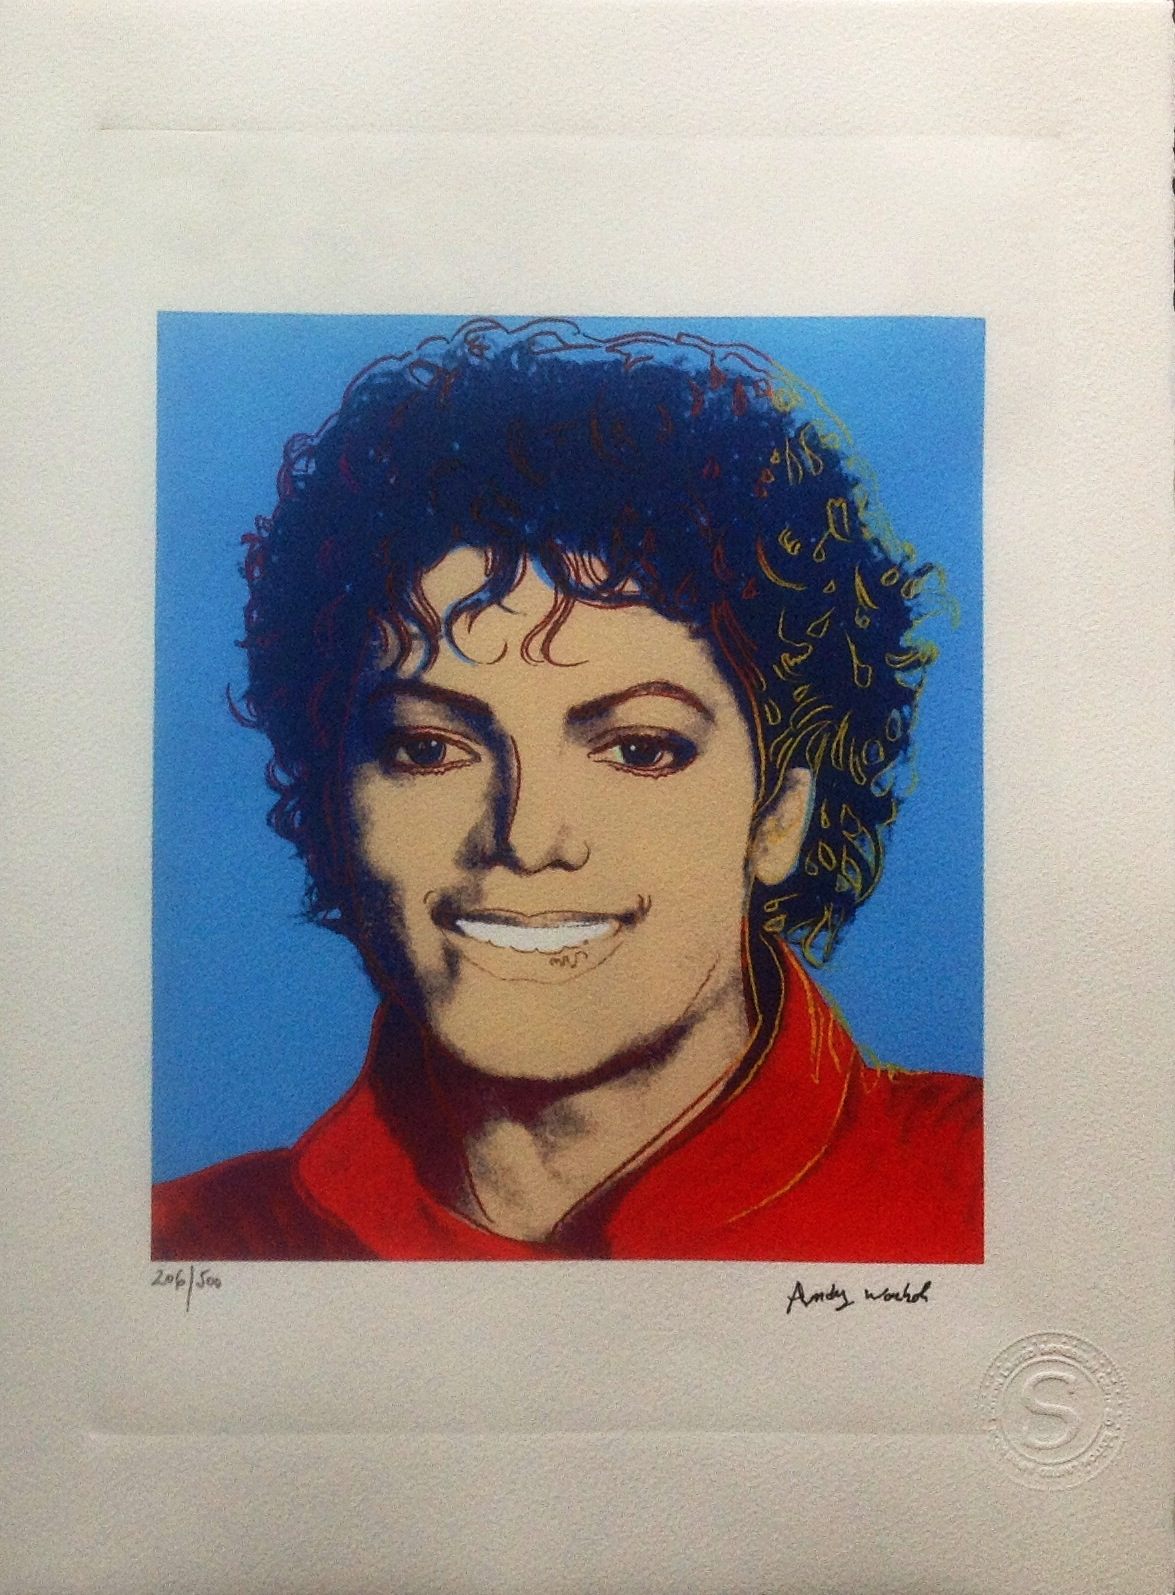 Andy Warhol Prix De Vente after) andy warhol - michael jackson, signed and numbered